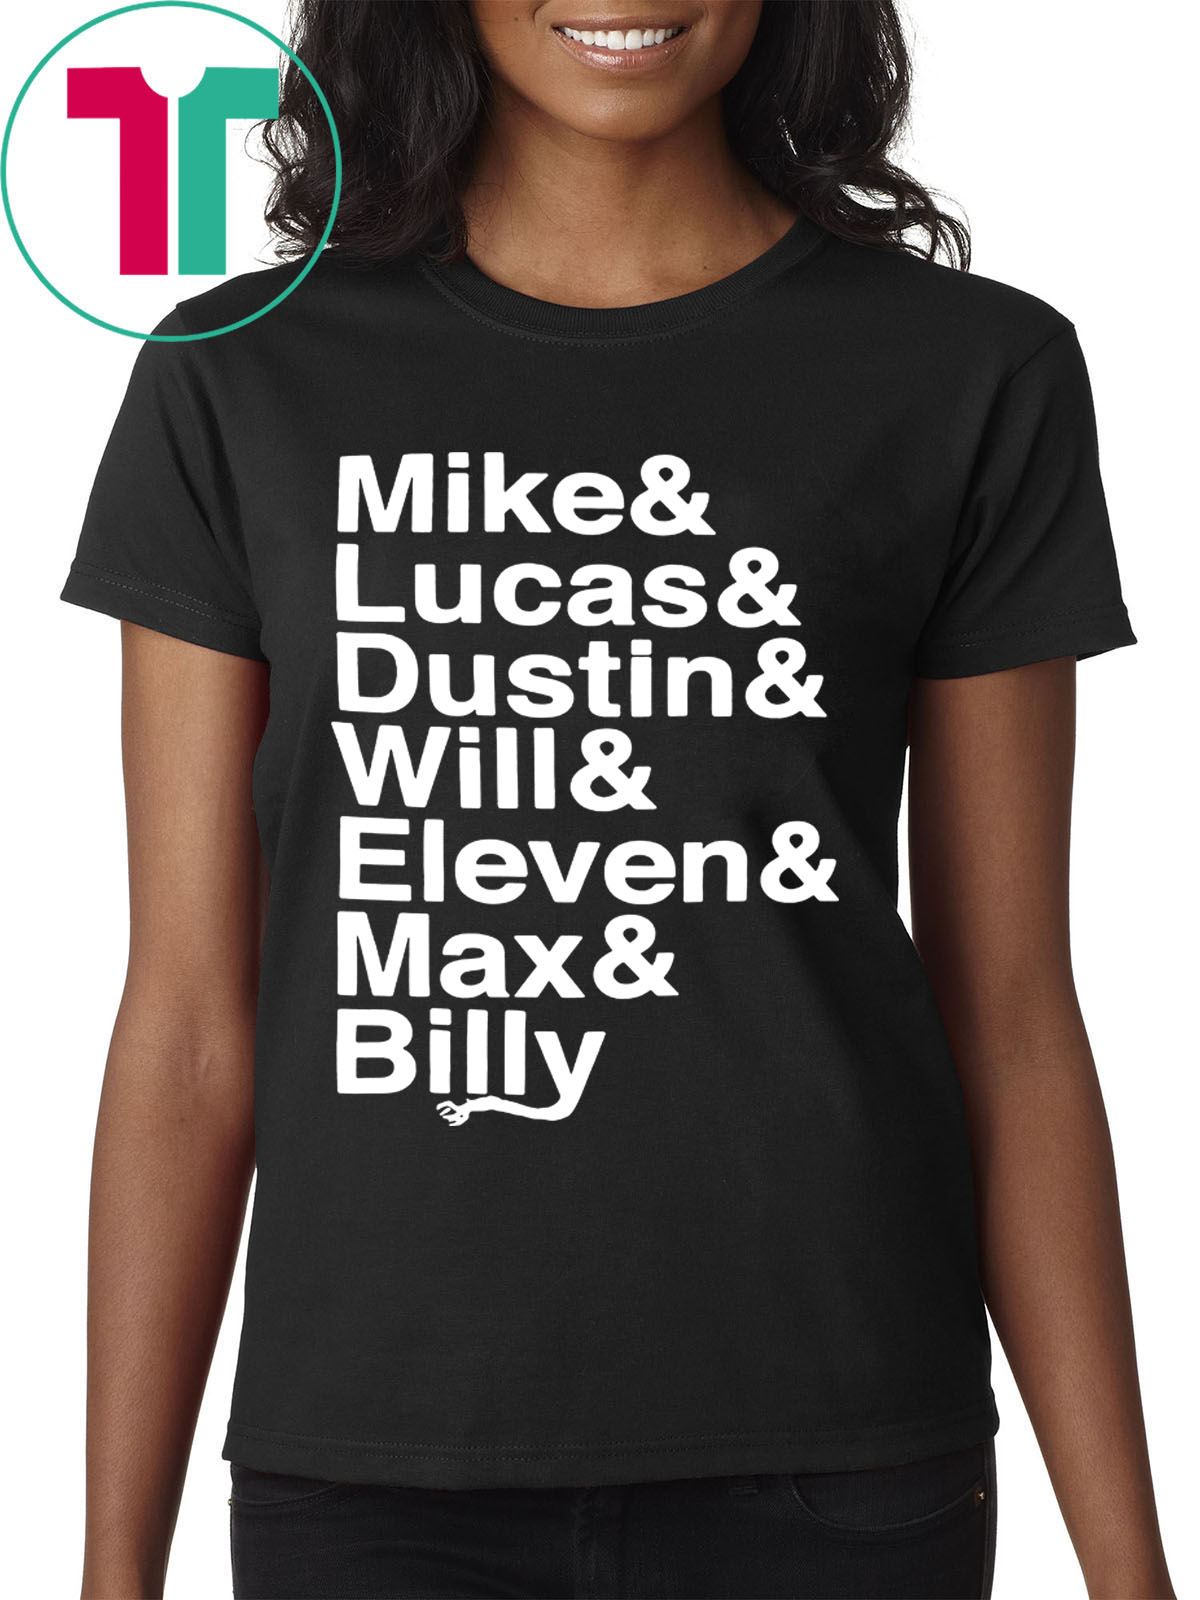 Stranger Things Name List Shirt Mike & Lucas & Dustin & Will & Eleven & Max  & Billy